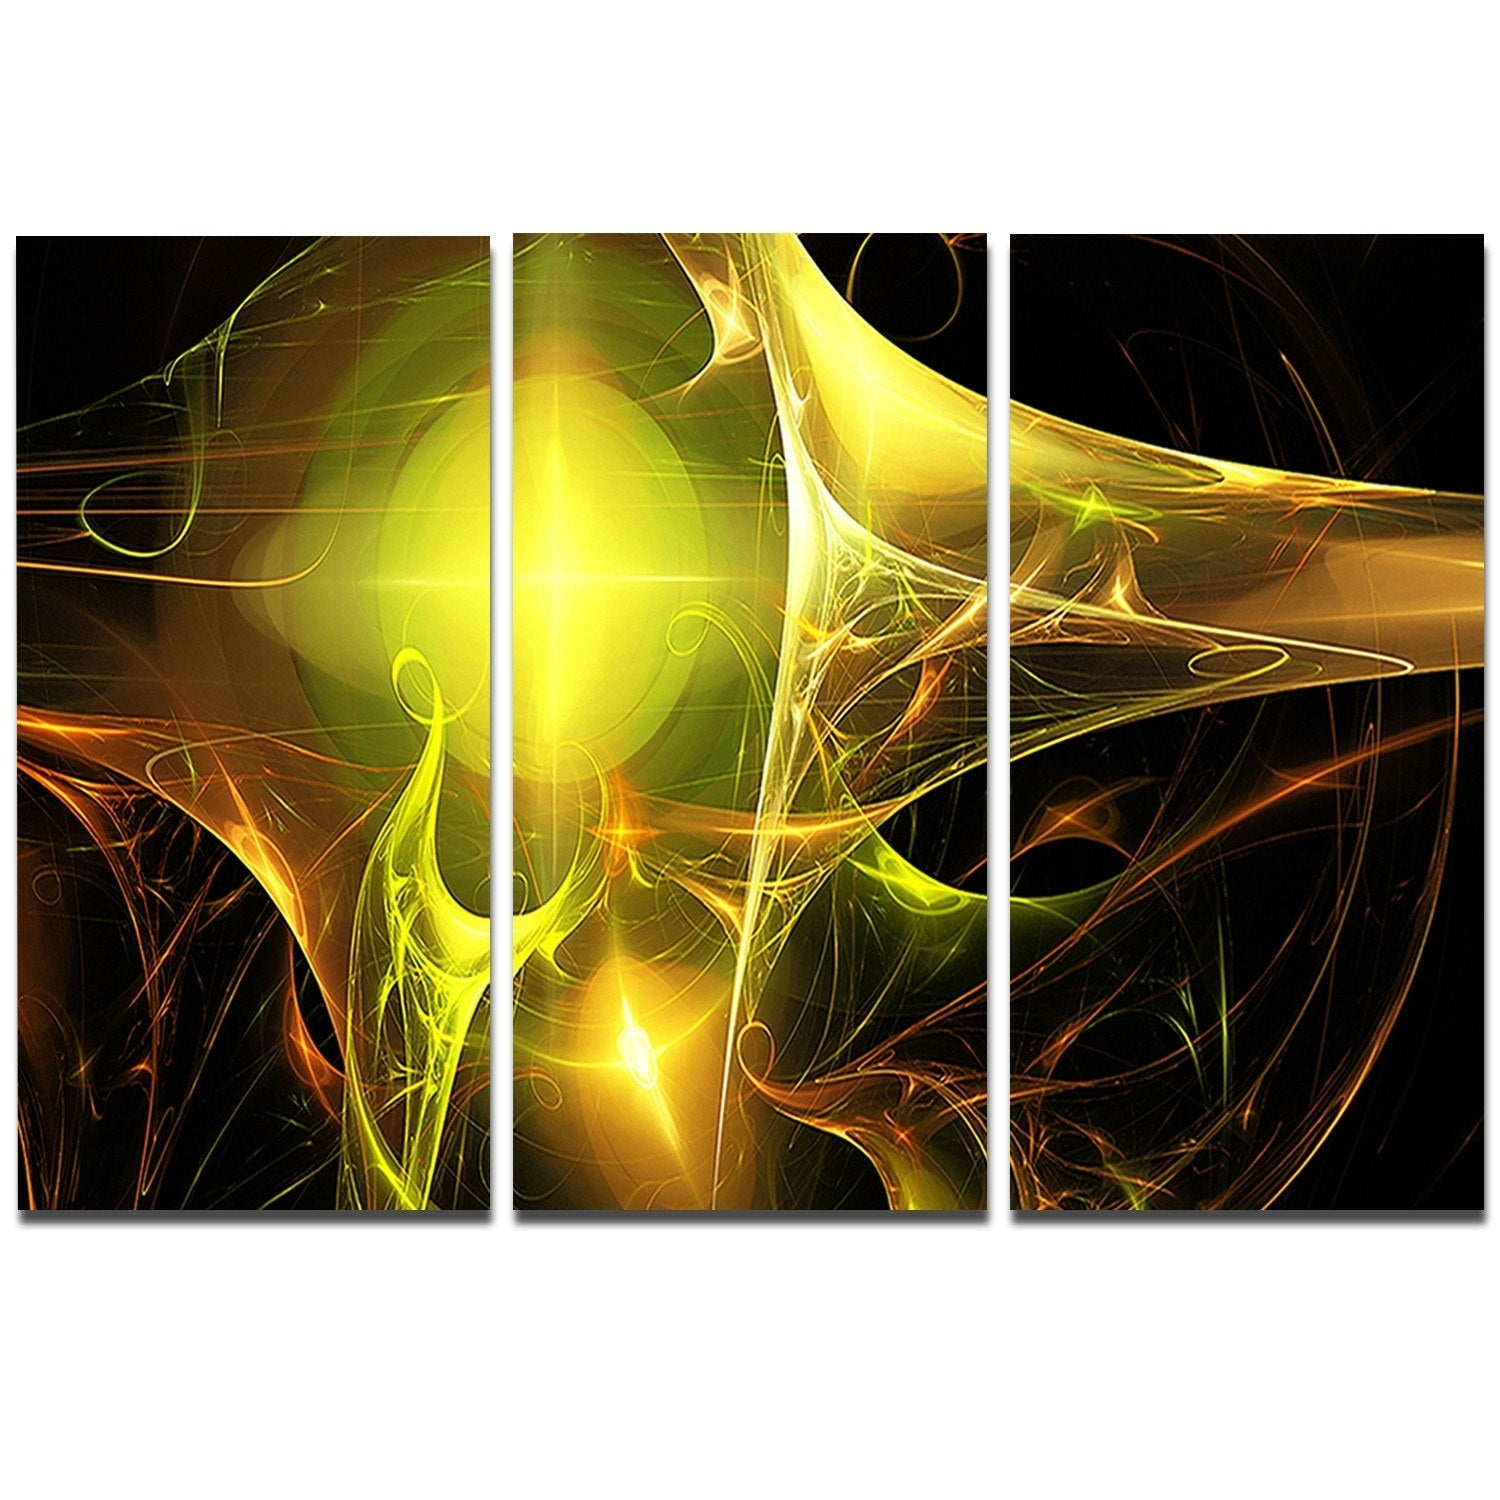 Lovely Abstract Wall Art Metal Gallery - The Wall Art Decorations ...